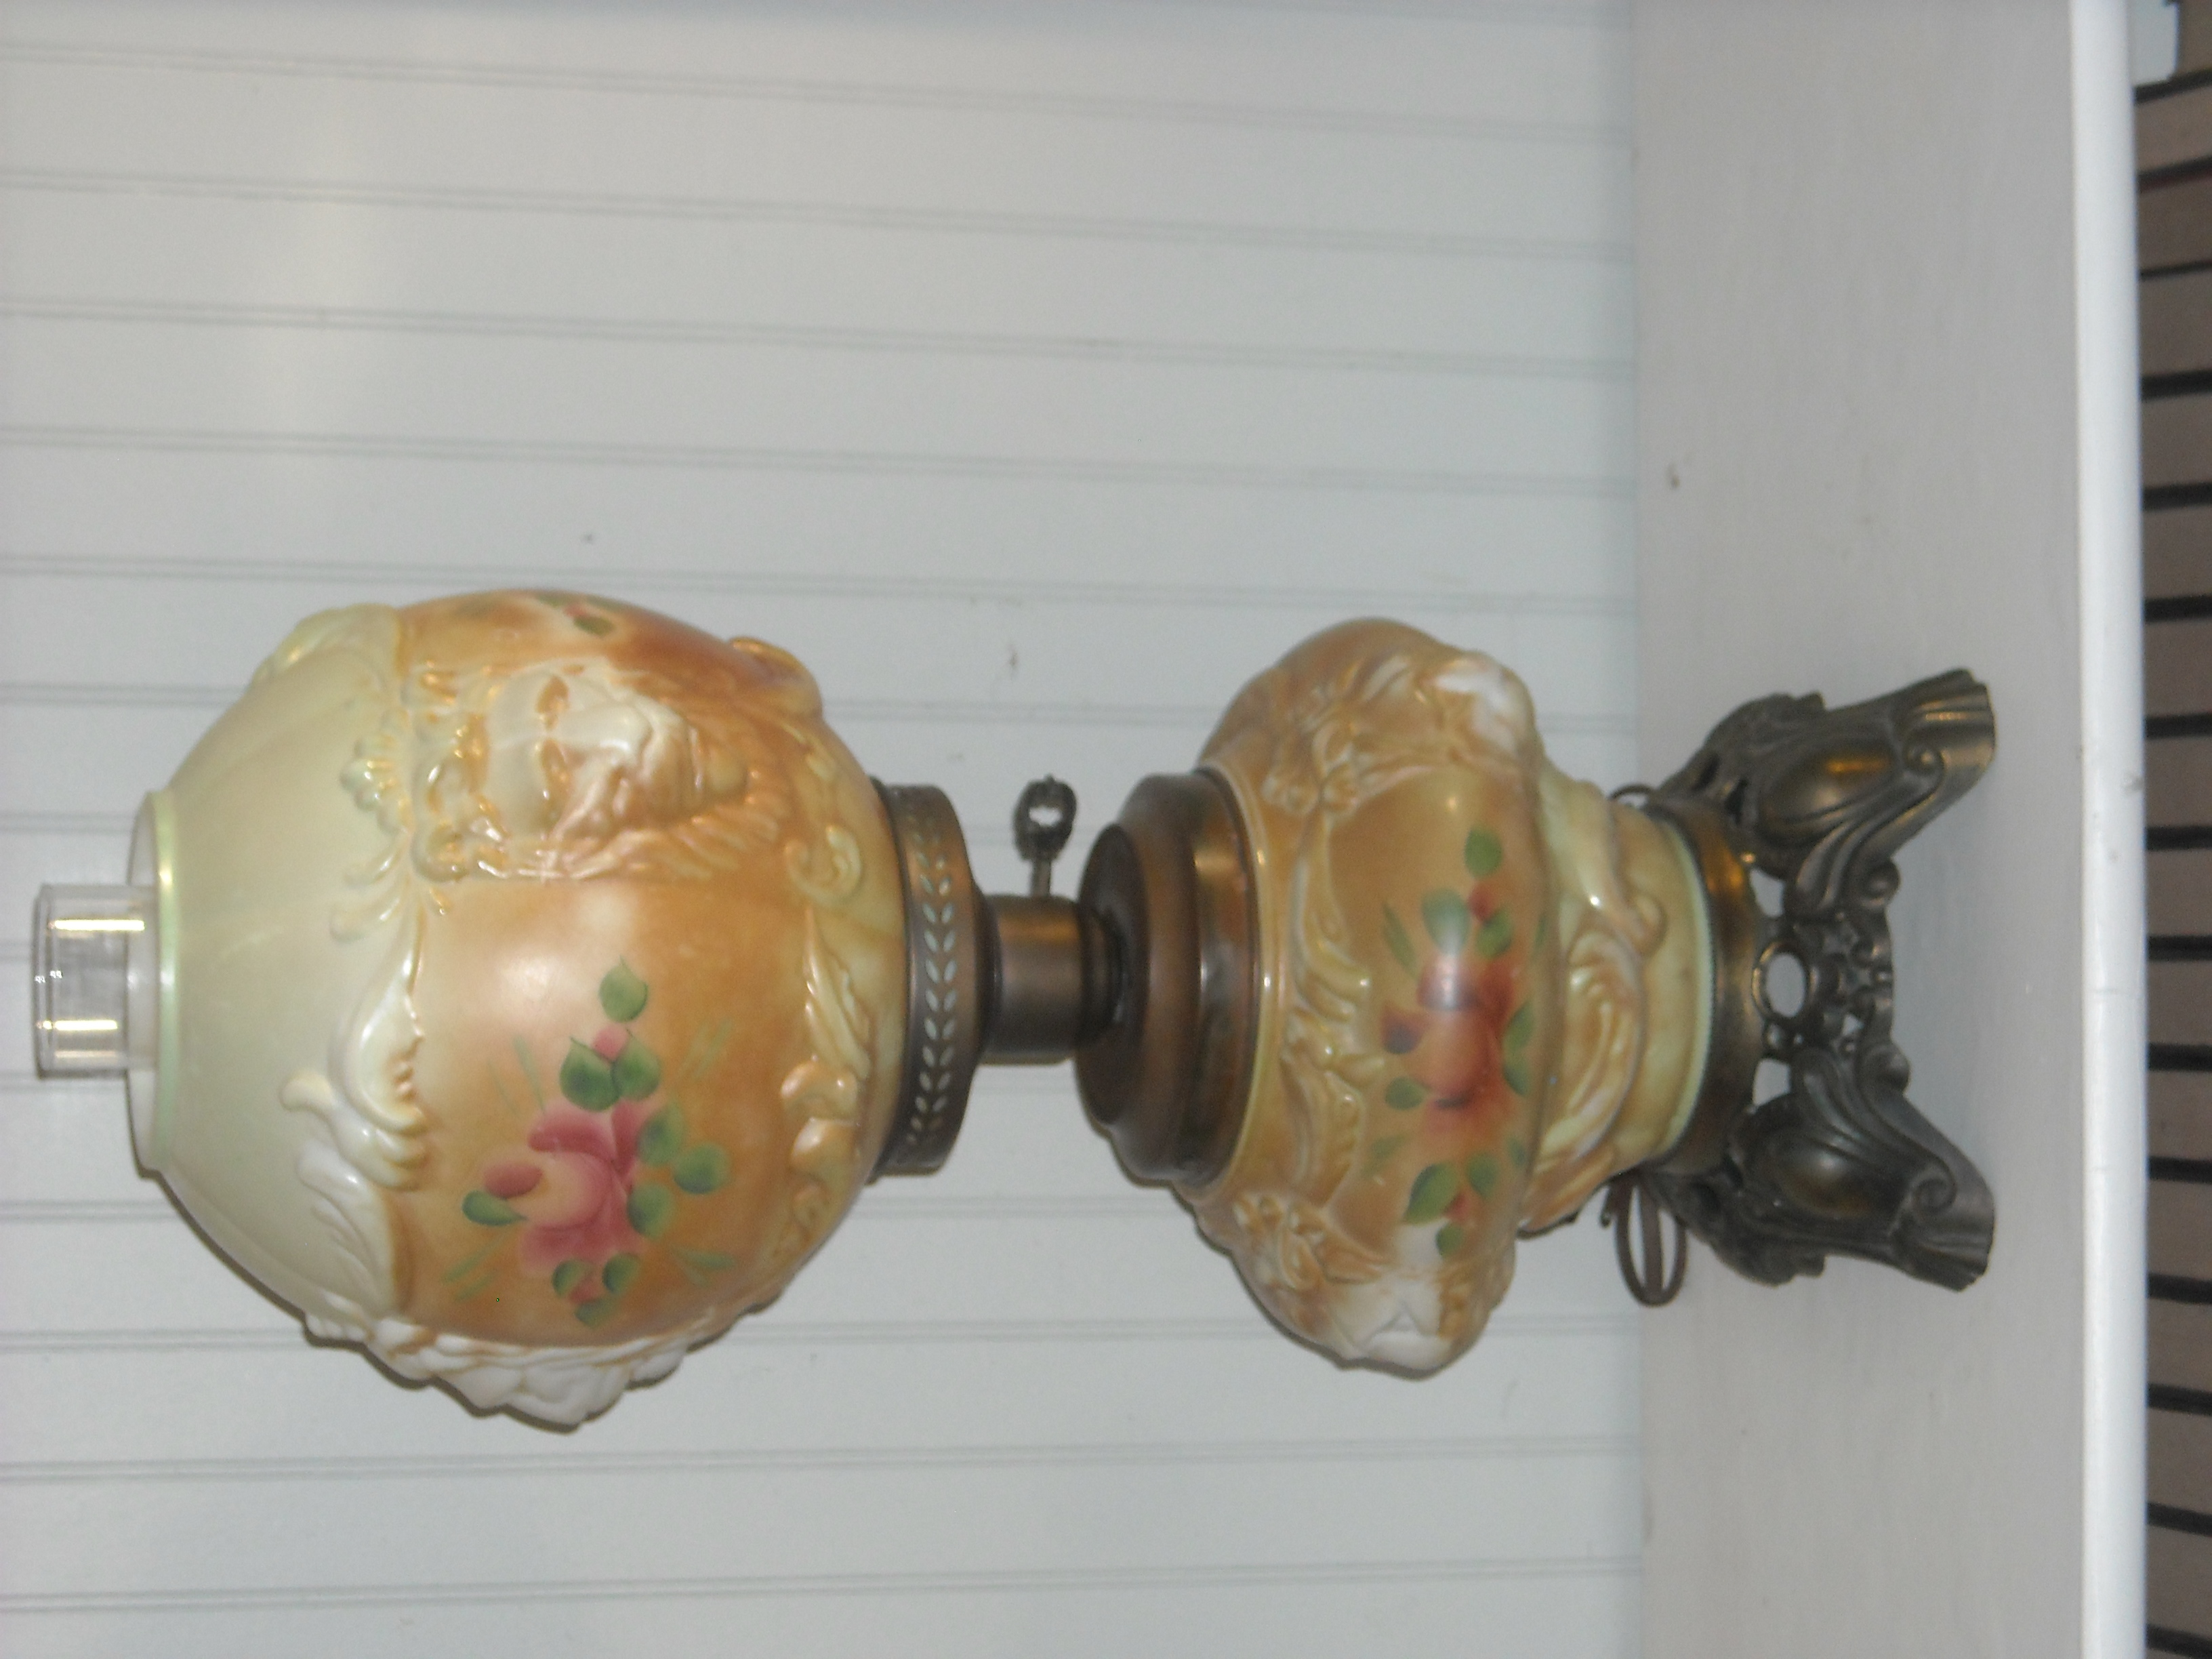 vintage 39 gone with the wind 39 lamp for sale classifieds. Black Bedroom Furniture Sets. Home Design Ideas